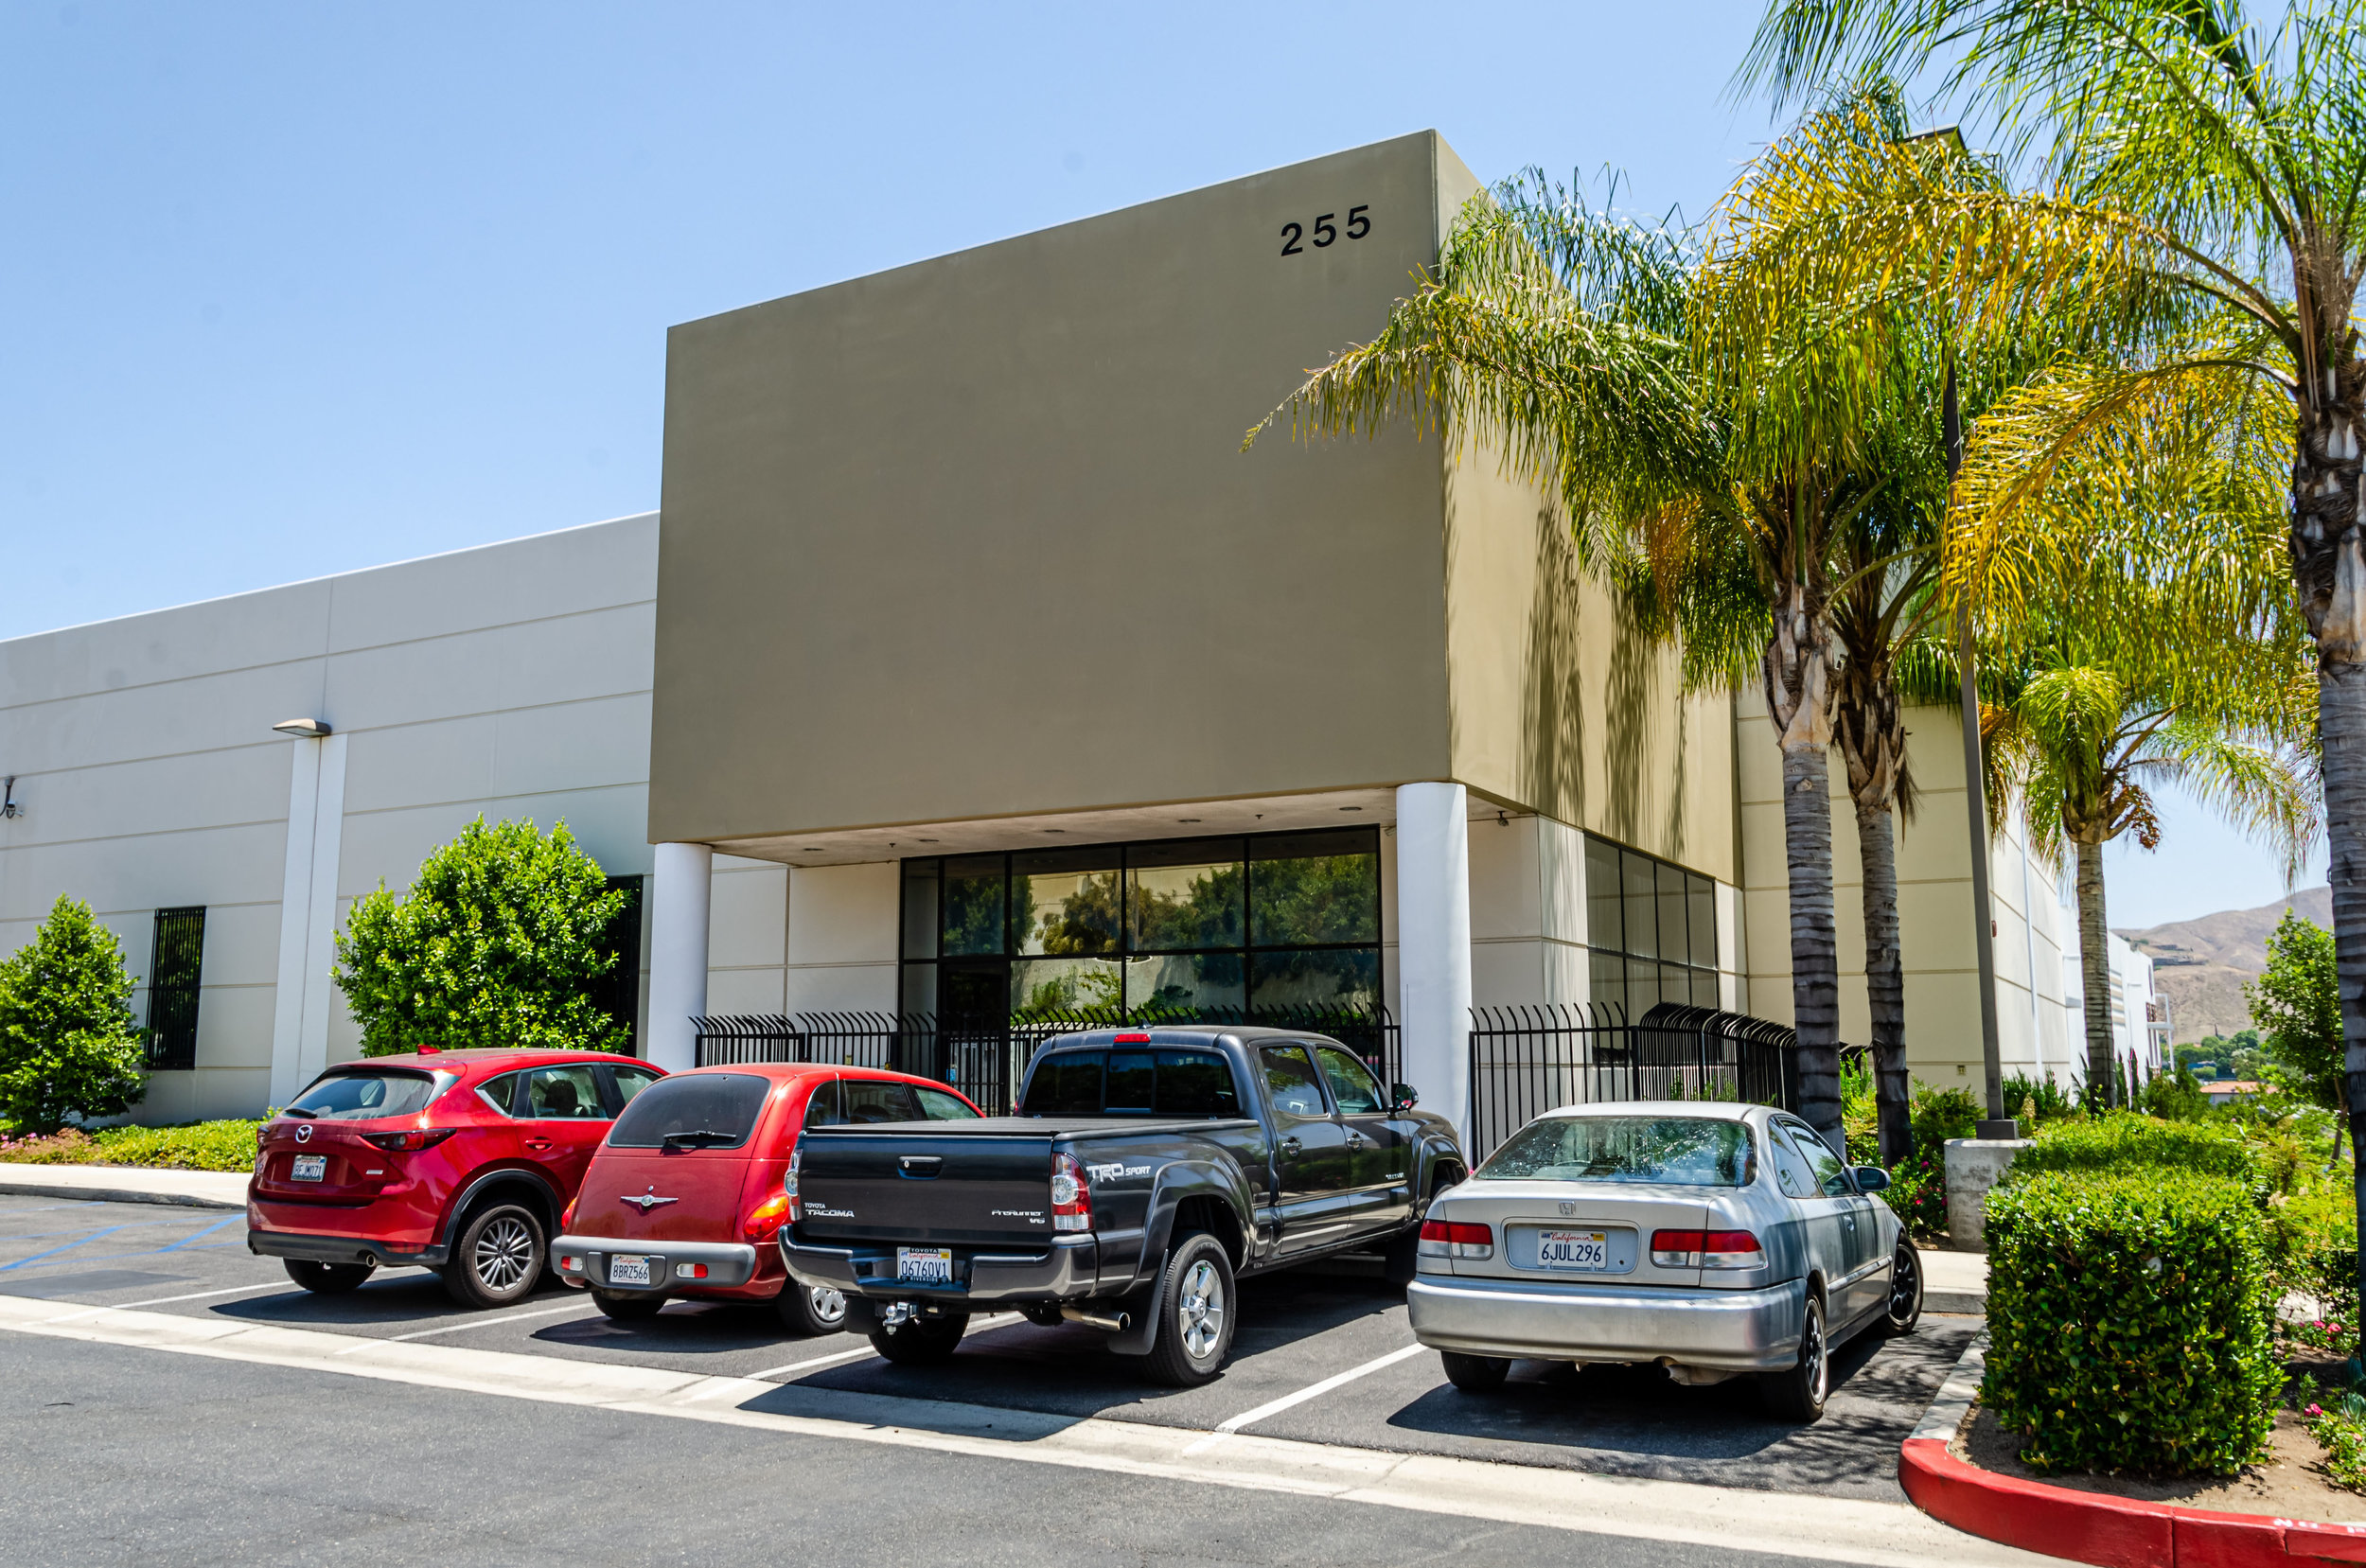 255 Crouse Drive • Corona • 14,679sf Industrial Investment • 1,500sf Office • 13,179sf Warehouse • For Sale